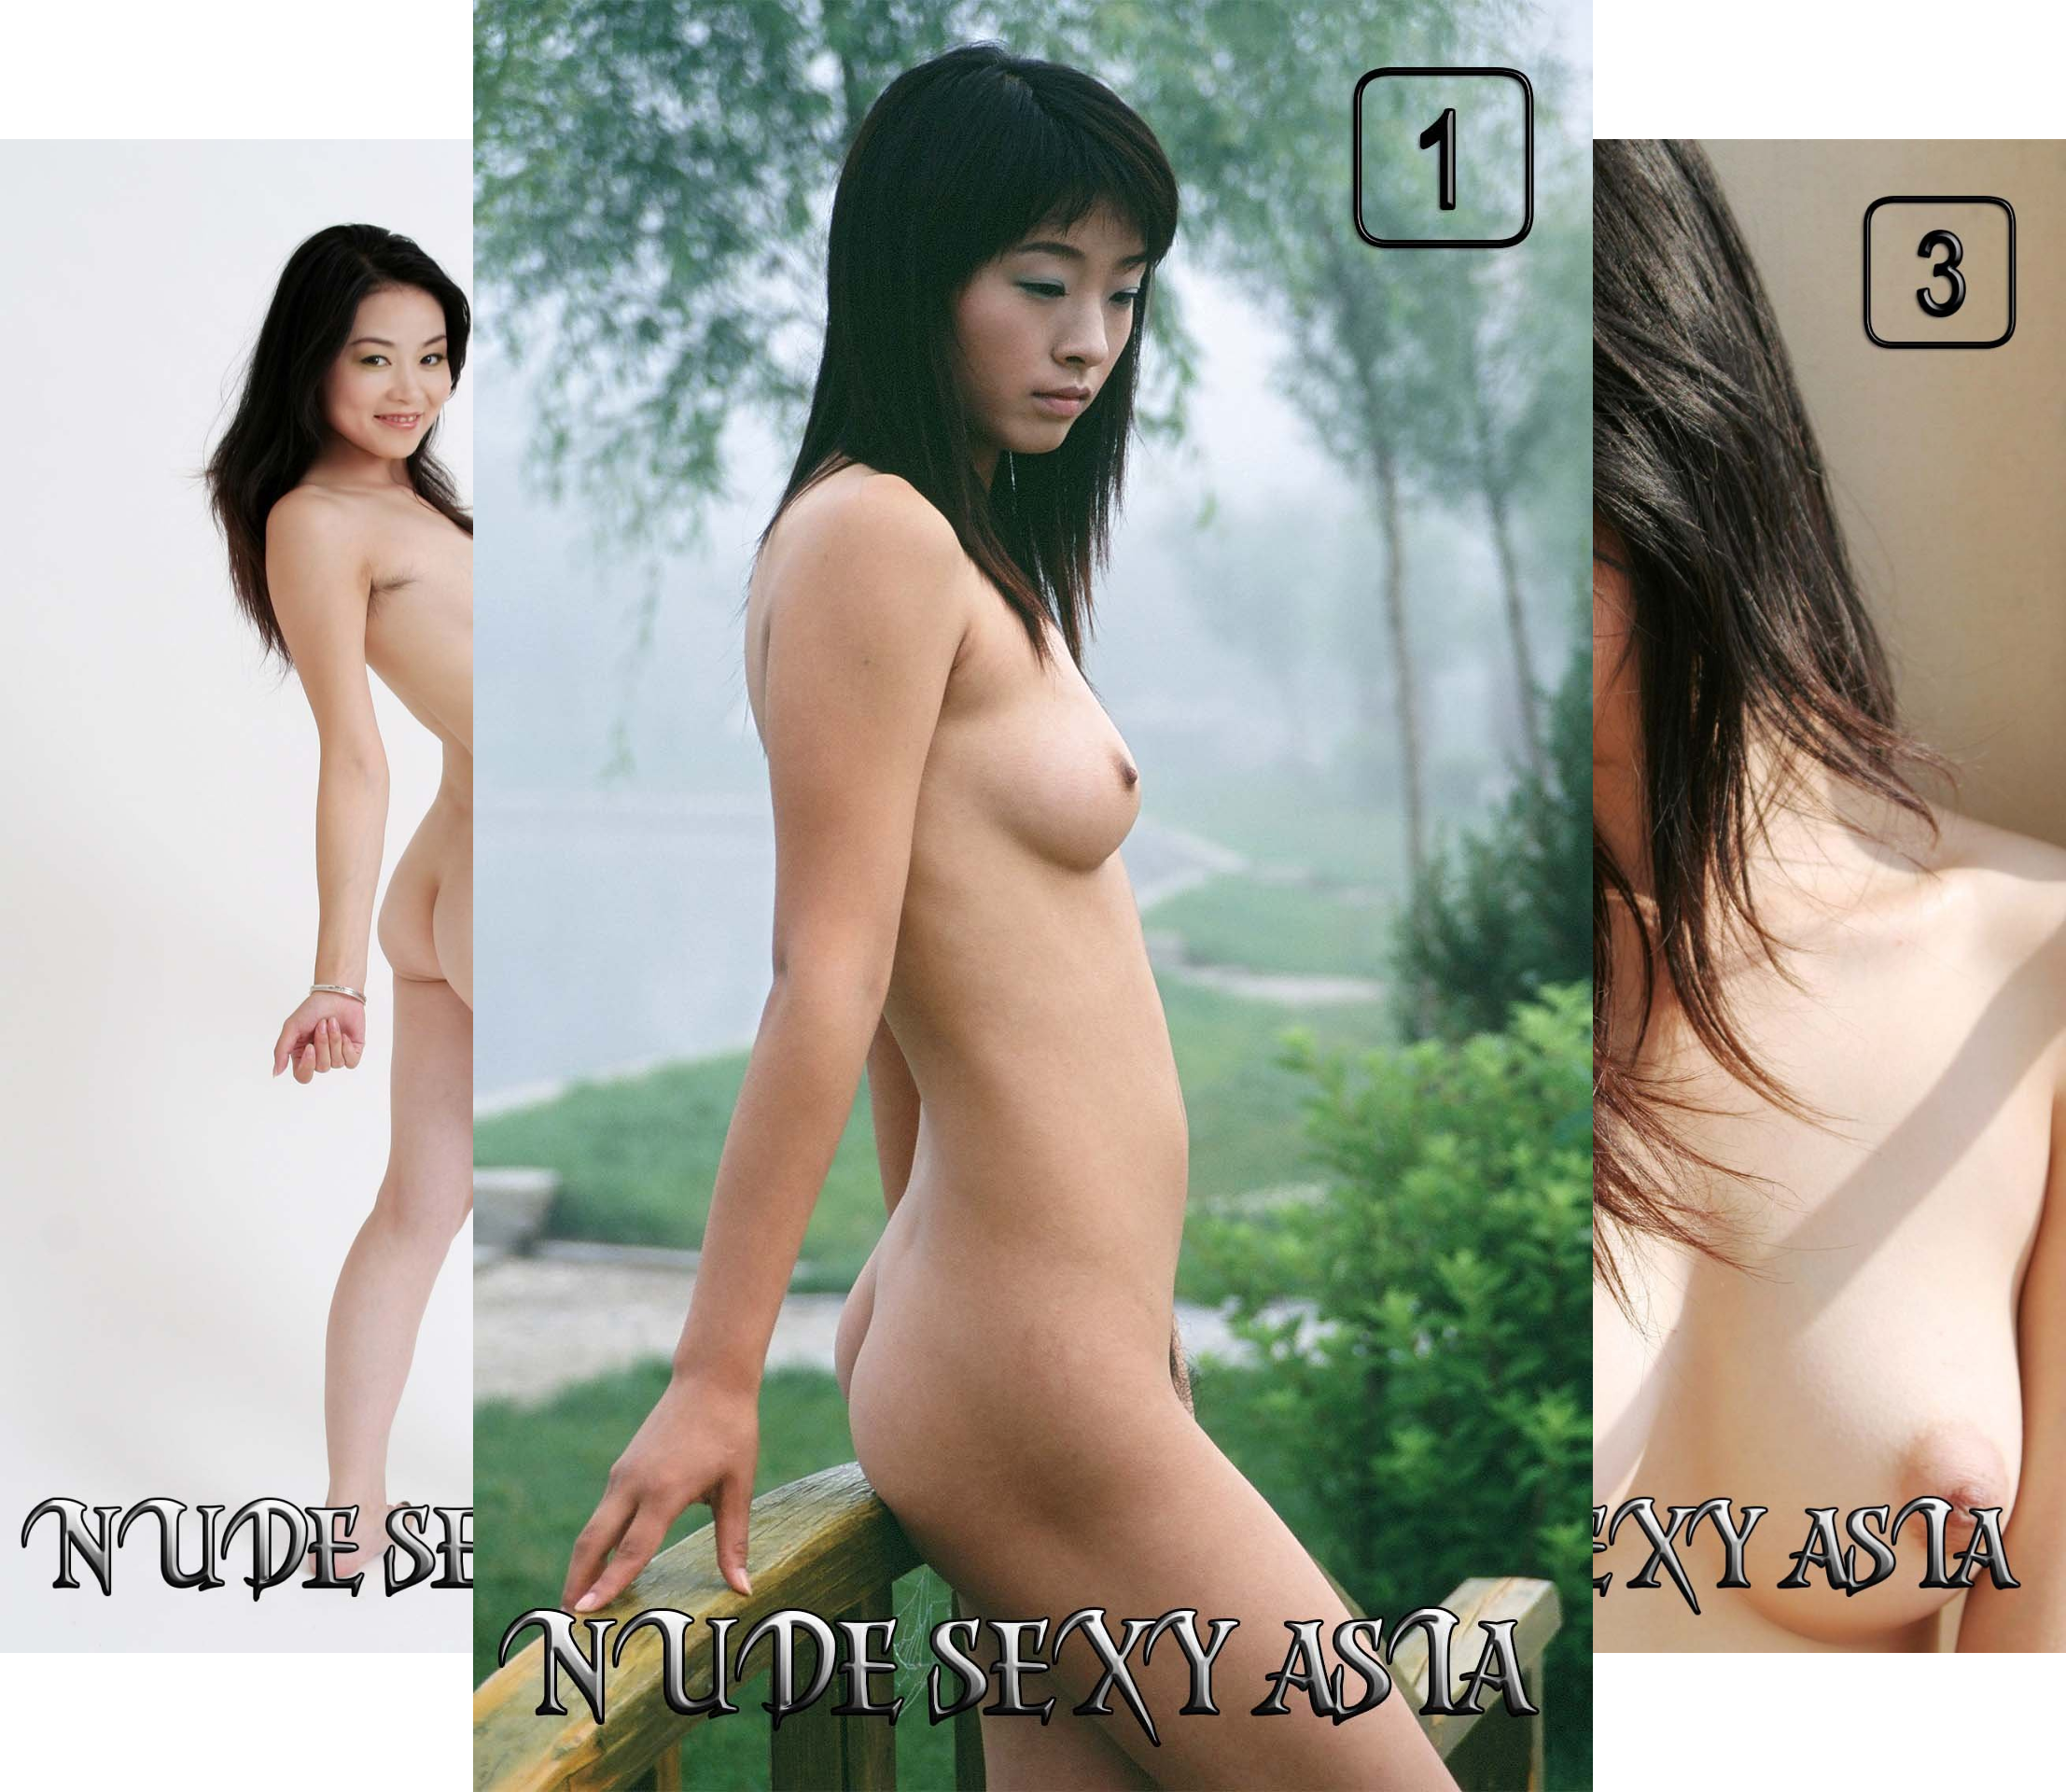 Nude Sexy Asia (40 Book Series)